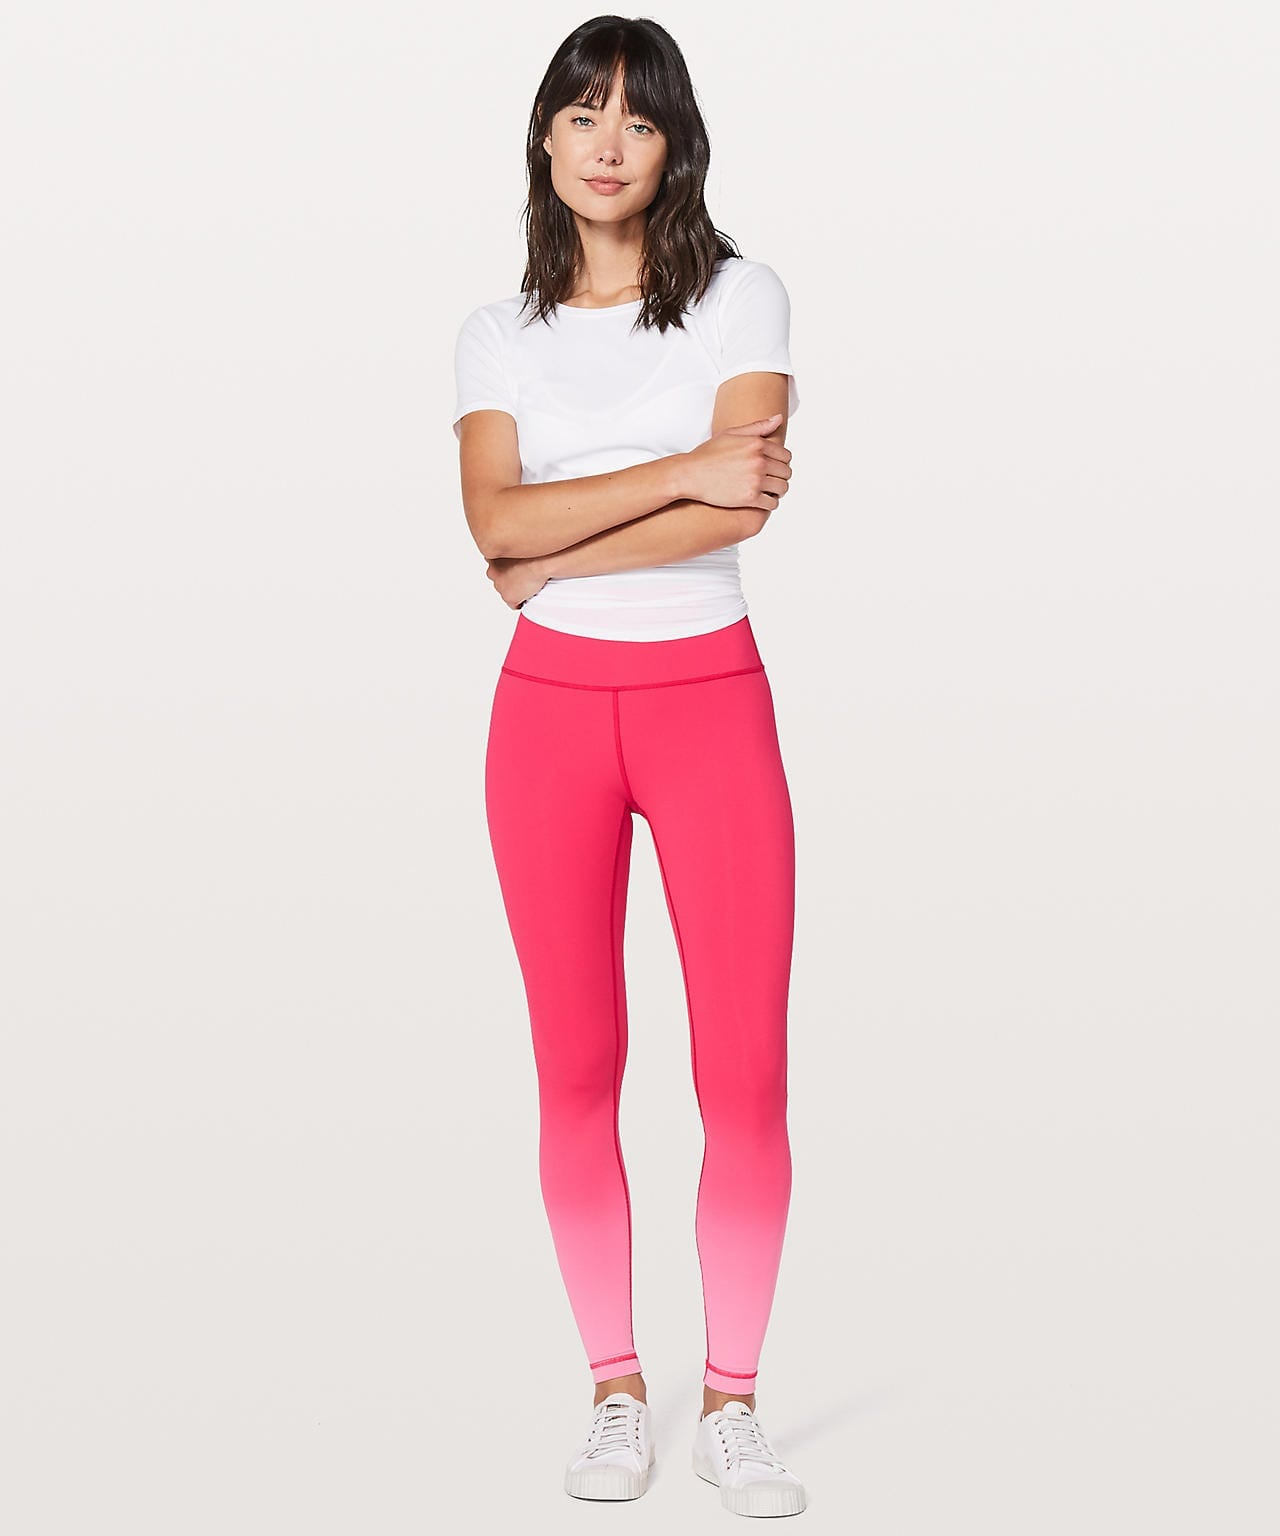 Ombre Fuchsia Pink Wunder Under Hi-Rise Tight (Ombre)